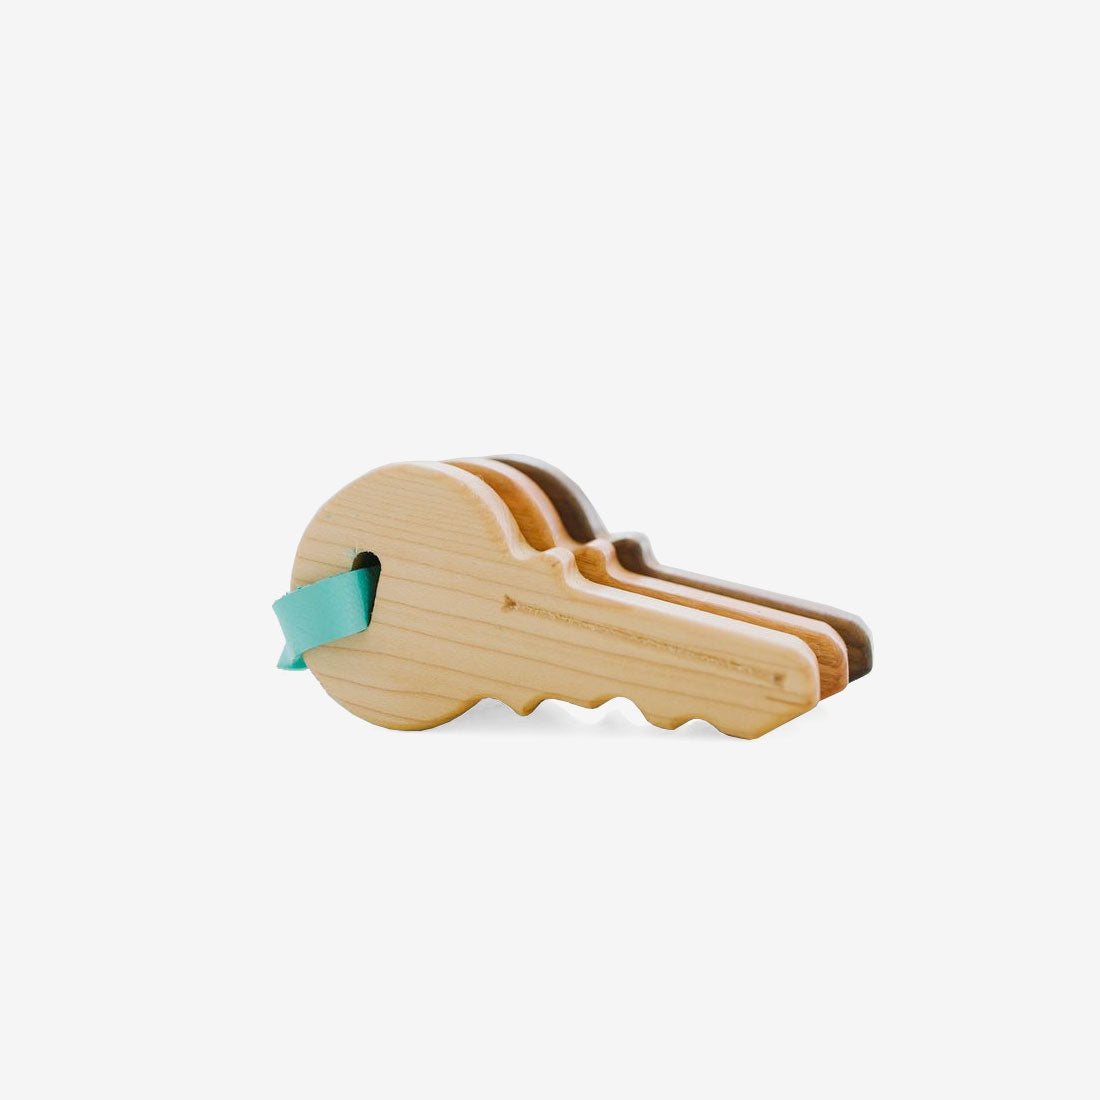 Hardwood Toy Keys